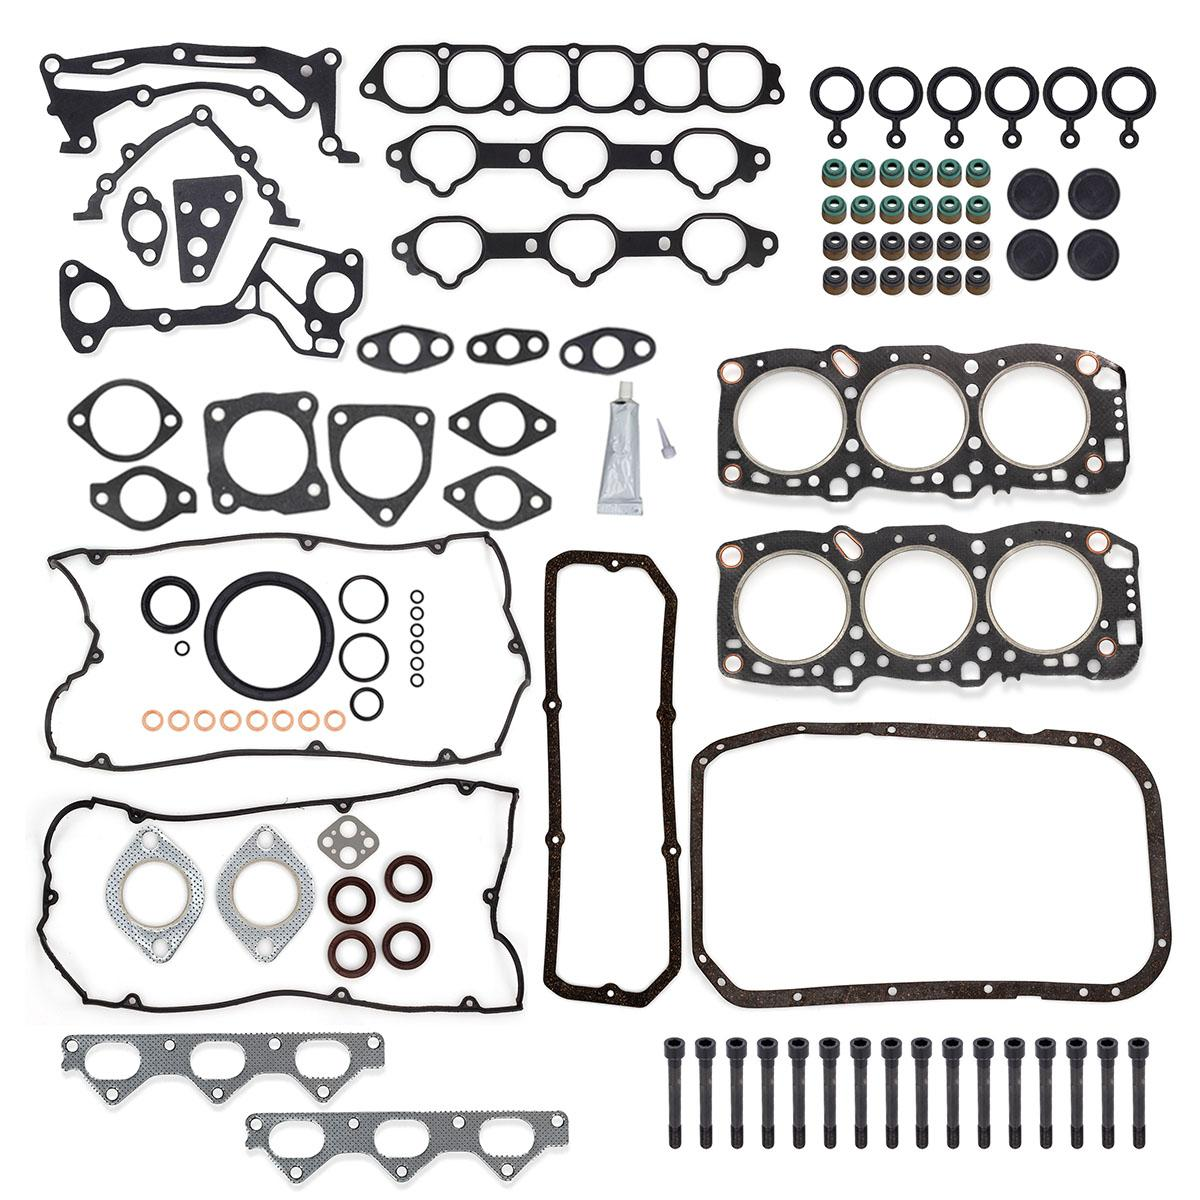 For 1991-1999 MITSUBISHI 3000GT 3.0L Cylinder Head Gasket